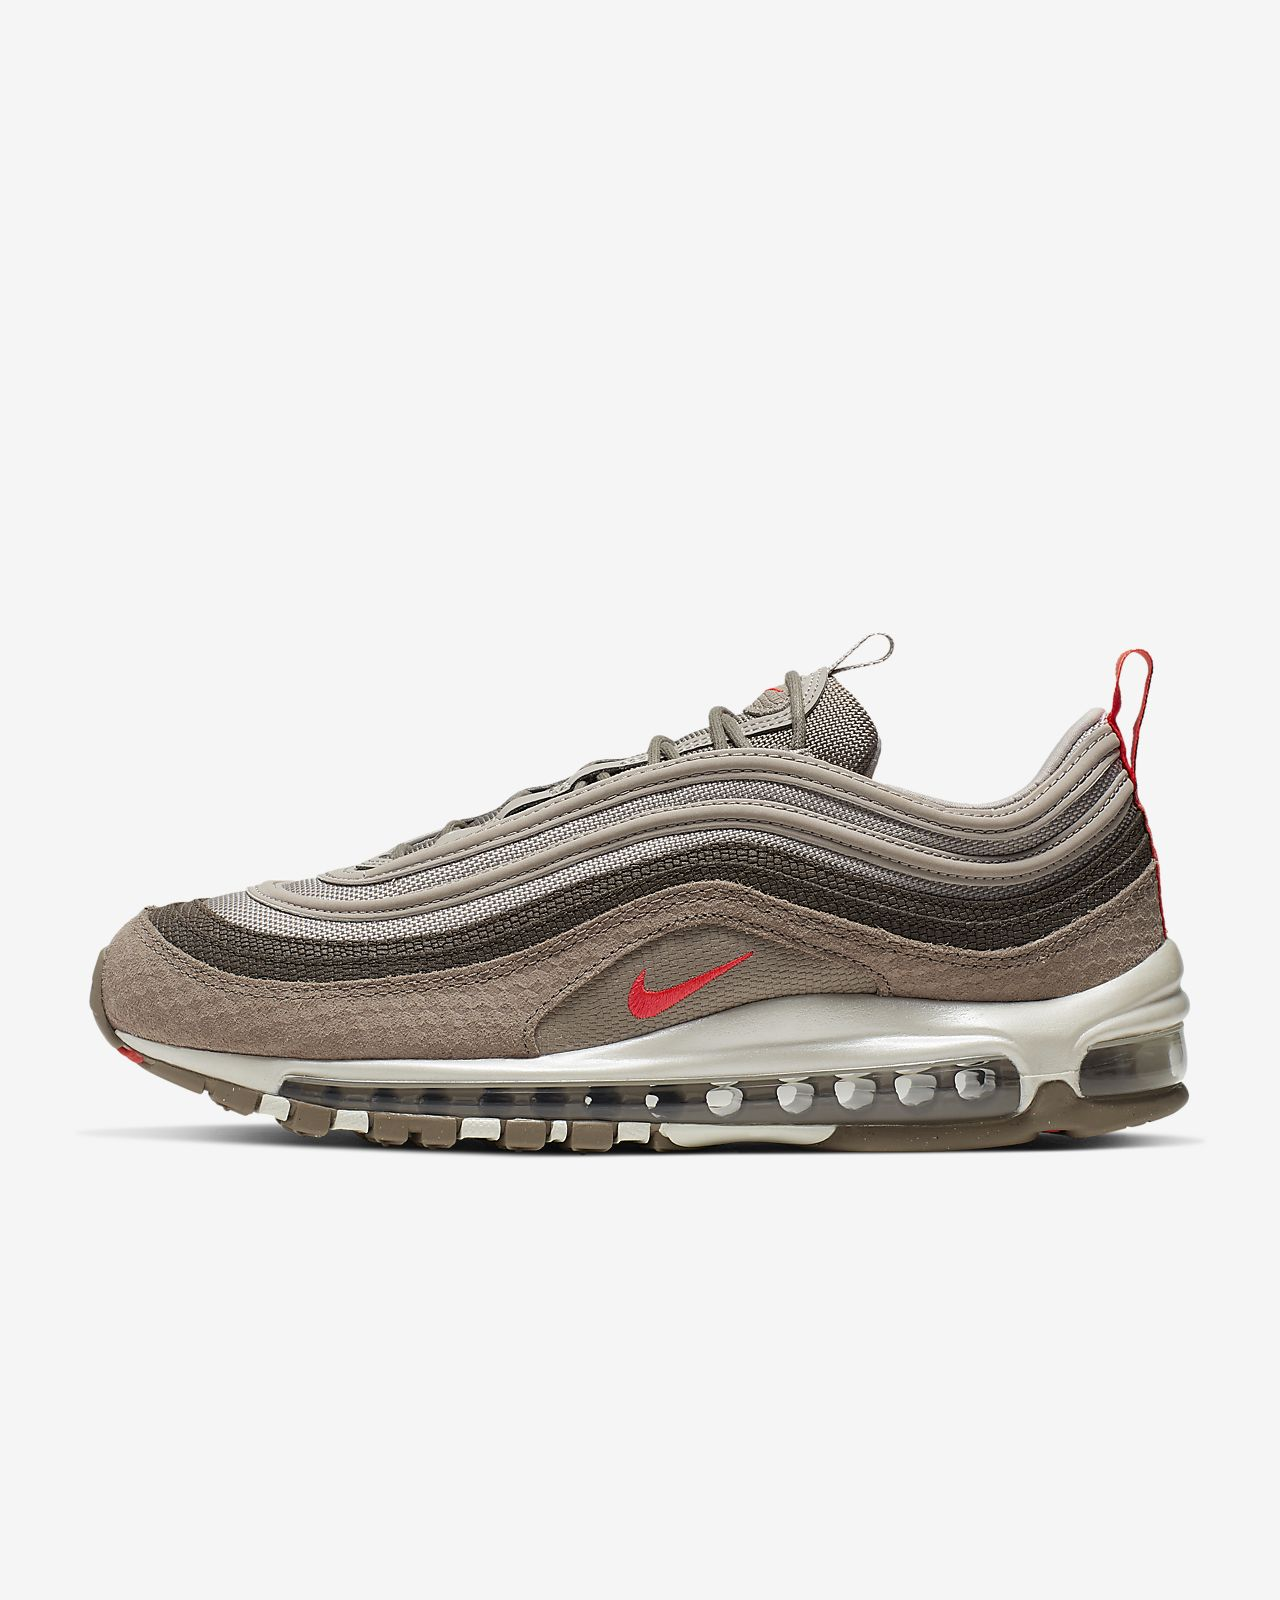 7912a65904 Nike Air Max 97 Premium Men's Shoe. Nike.com